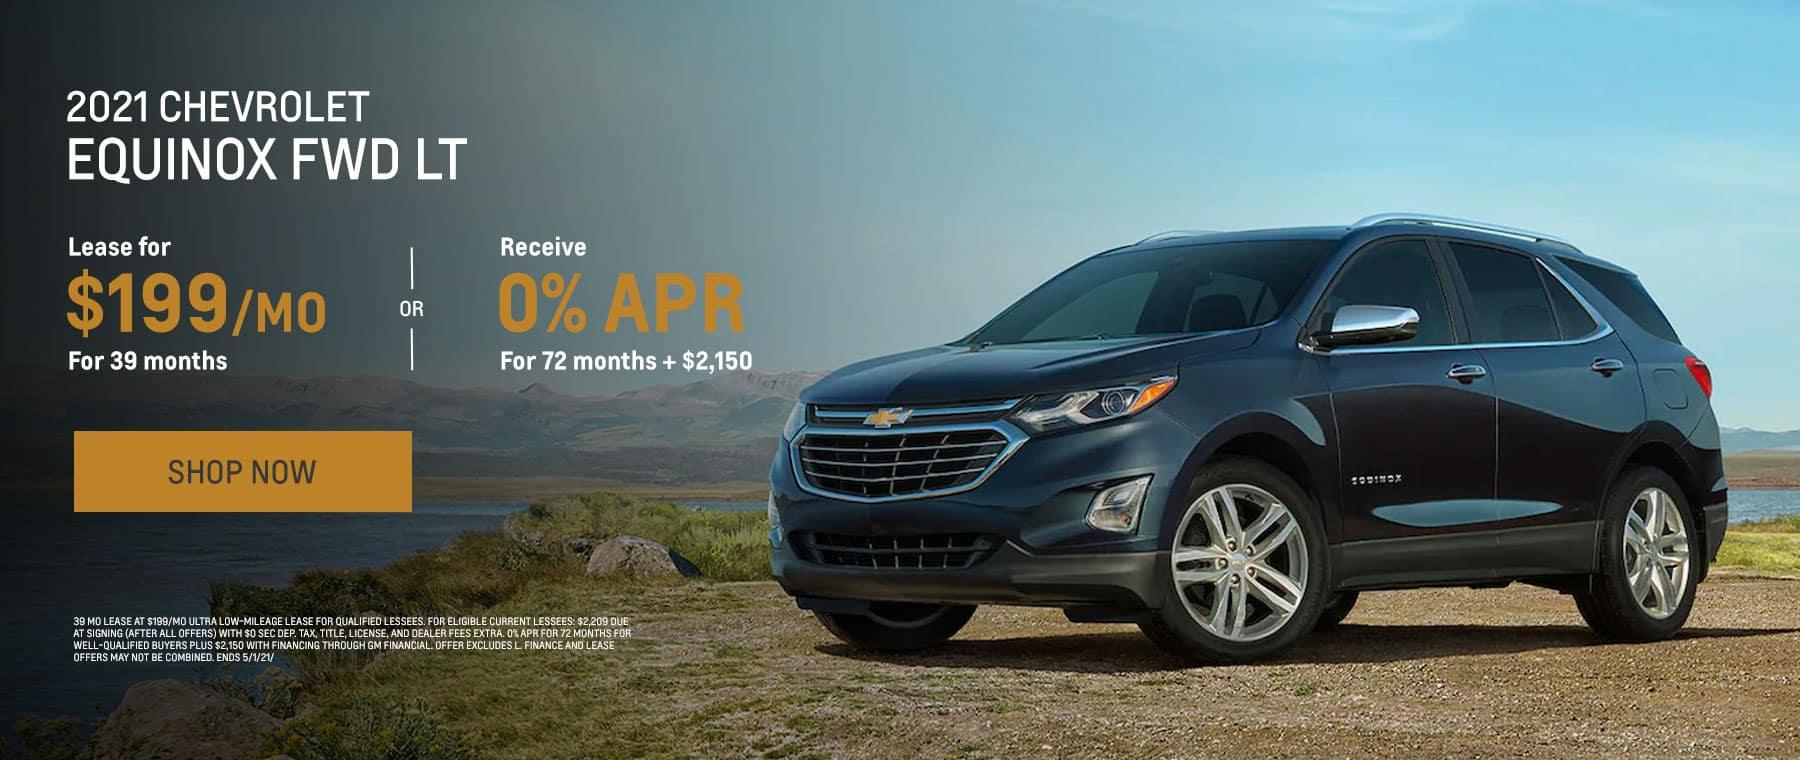 2021 CHEVROLET Equinox FWD LT $199/mo. for 39 mo. OR 0% APR for 72 mo. + $2,150 * 39 mo lease at $199/mo Ultra Low-Mileage Lease for Qualified Lessees. For eligible current lessees: $2,209 due at signing (after all offers) with $0 sec dep. Tax, title, license, and dealer fees extra. 0% APR for 72 months for well-qualified buyers plus $2,150 with financing through GM Financial. Offer excludes L. Finance and lease offers may not be combined. Ends 5/1/21/